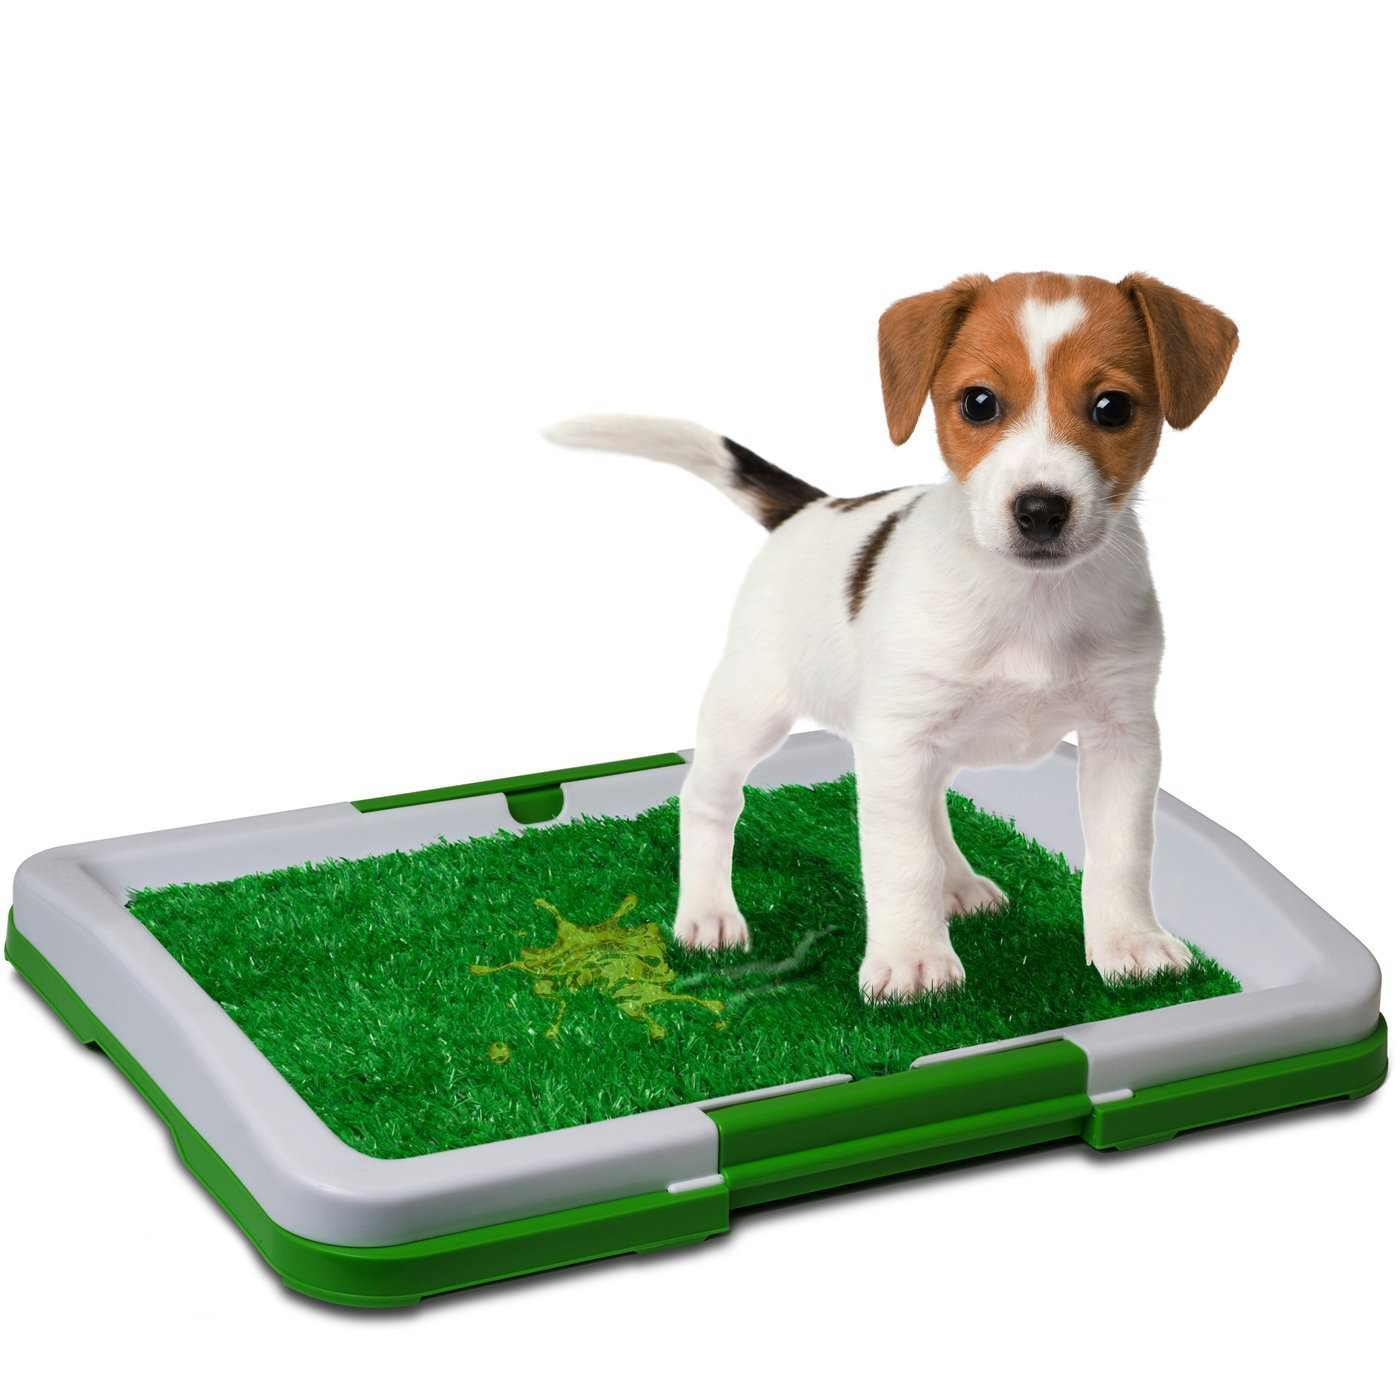 How To Get Dog To Use Puppy Pad